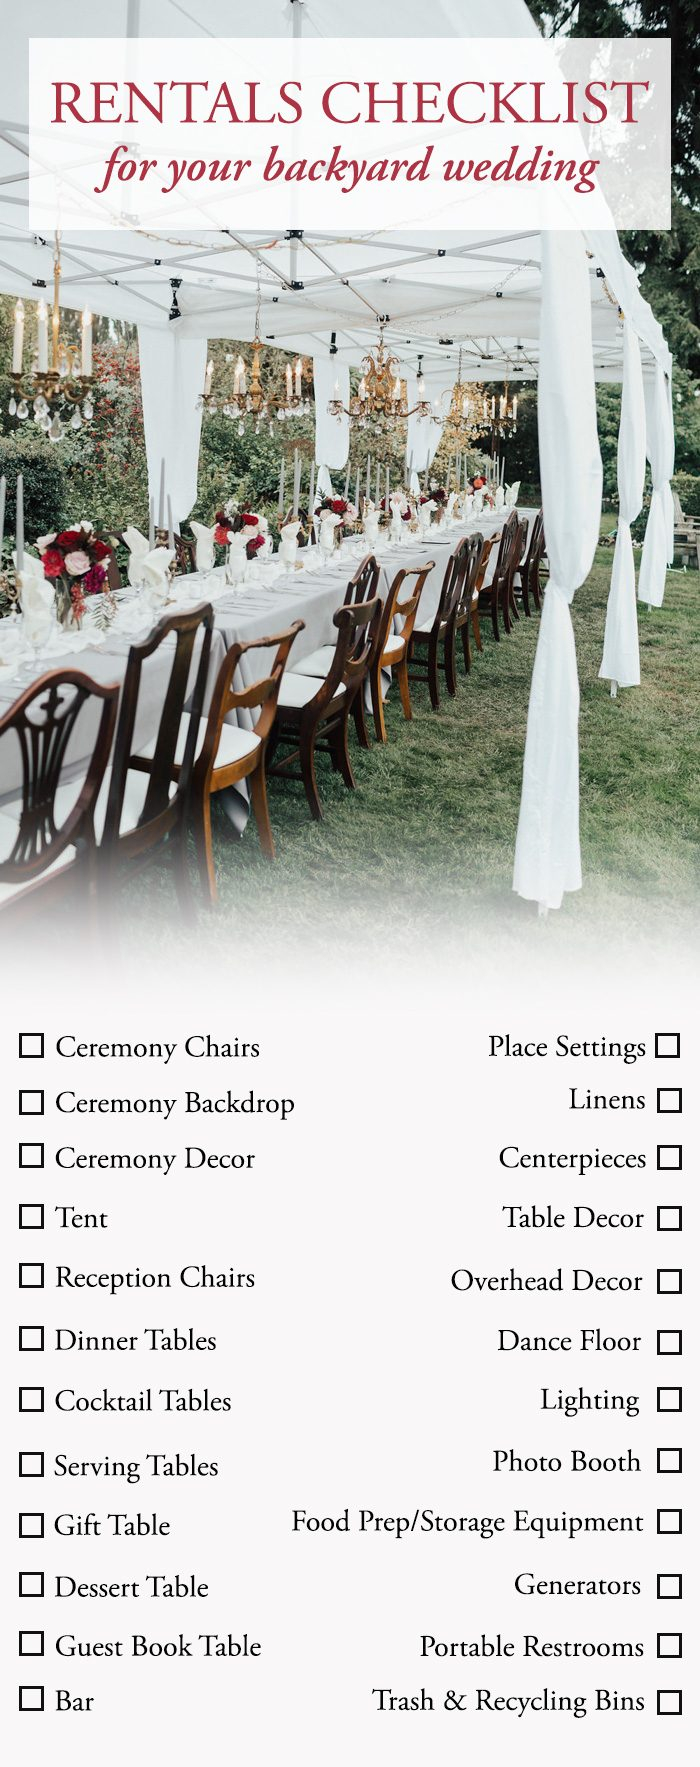 The Ultimate Guide To Planning A Backyard Wedding Junebug Weddings with 11 Awesome Concepts of How to Make Backyard Wedding Reception Decorations